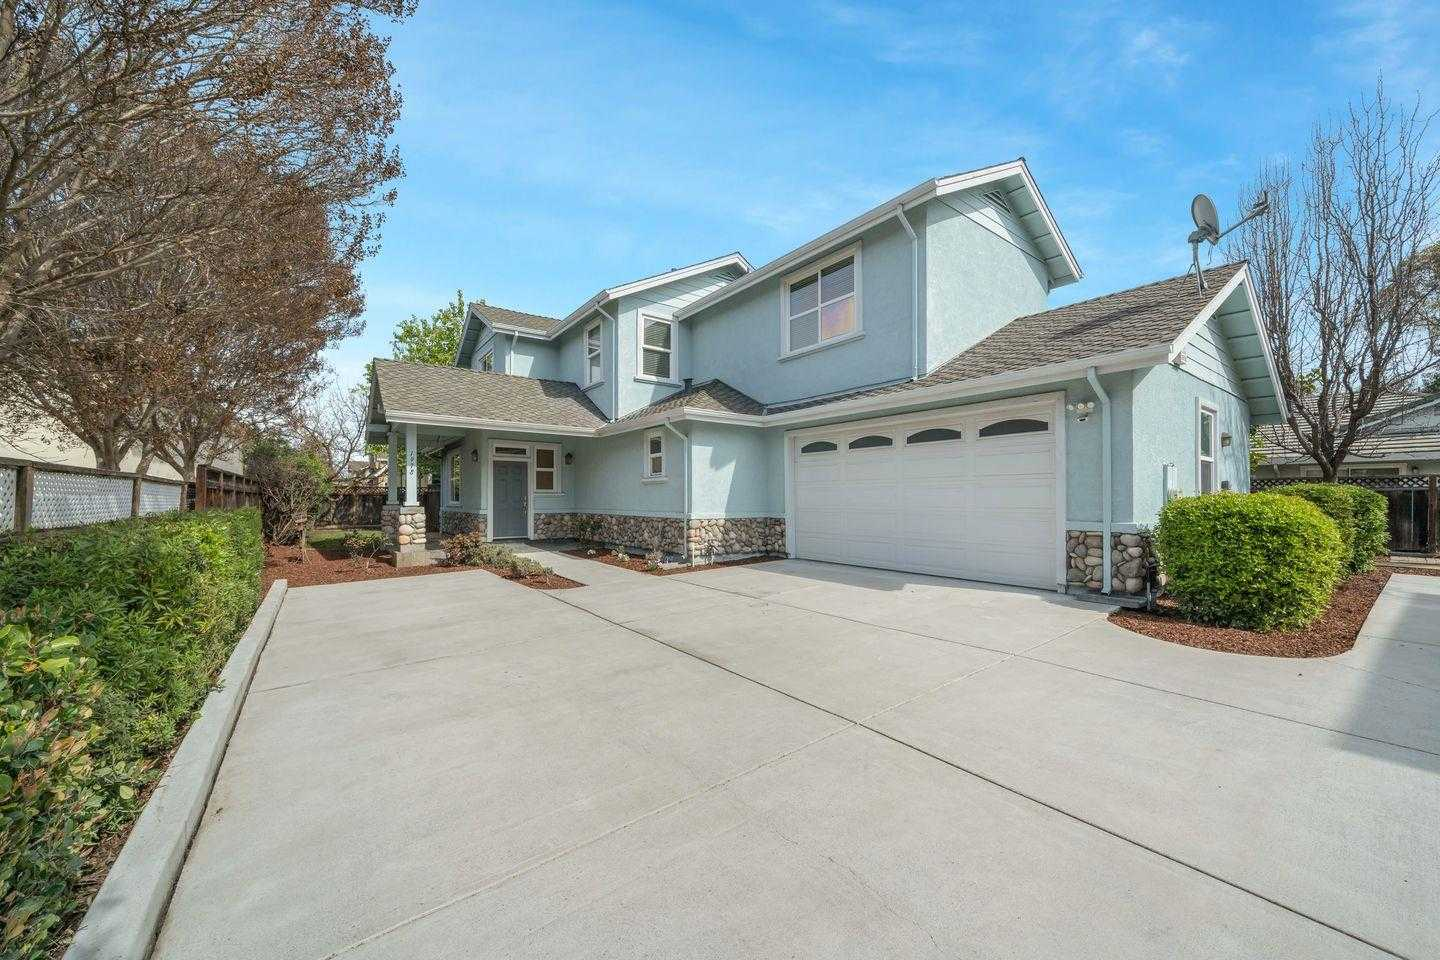 $1,898,000 - 4Br/3Ba -  for Sale in Mountain View